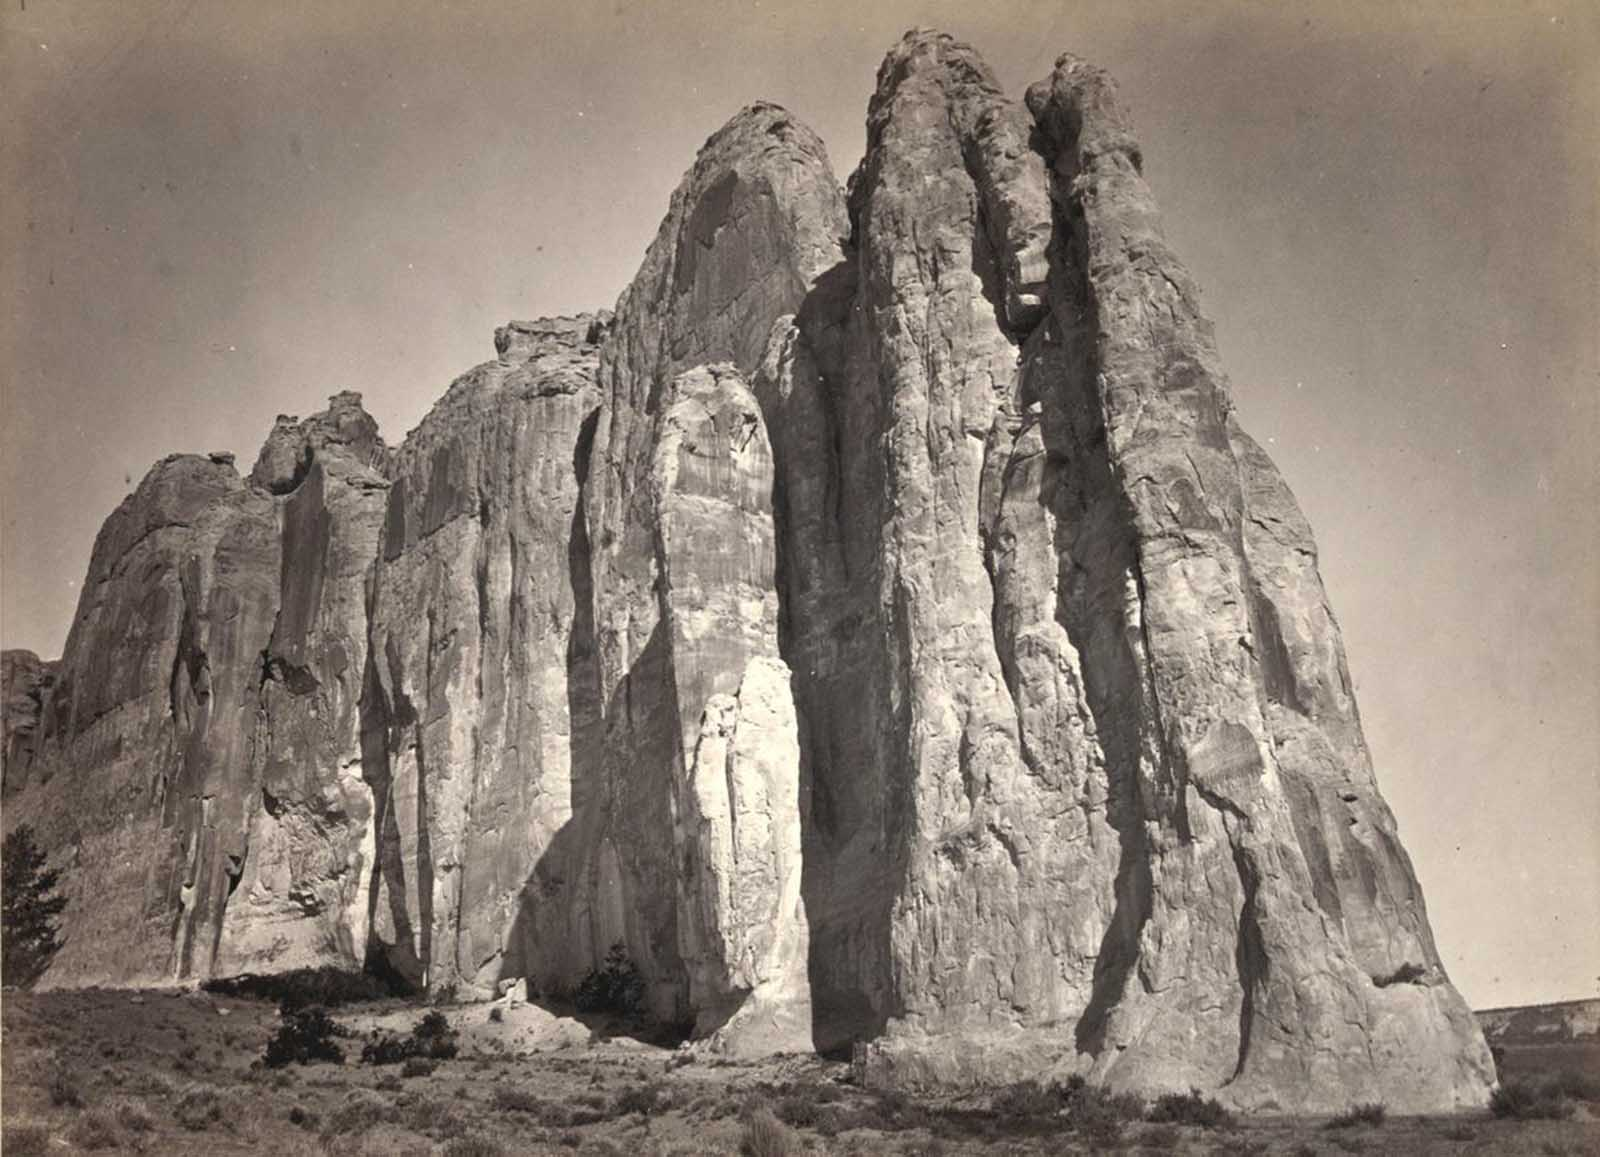 The south side of Inscription Rock (now El Morro National Monument), in New Mexico in 1873. Note the small figure of a man standing at bottom center. The prominent feature stands near a small pool of water, and has been a resting place for travelers for centuries. Since at least the 17th century, natives, Europeans, and later American pioneers carved names and messages into the rock face as they paused. In 1906, a law was passed, prohibiting further carving.